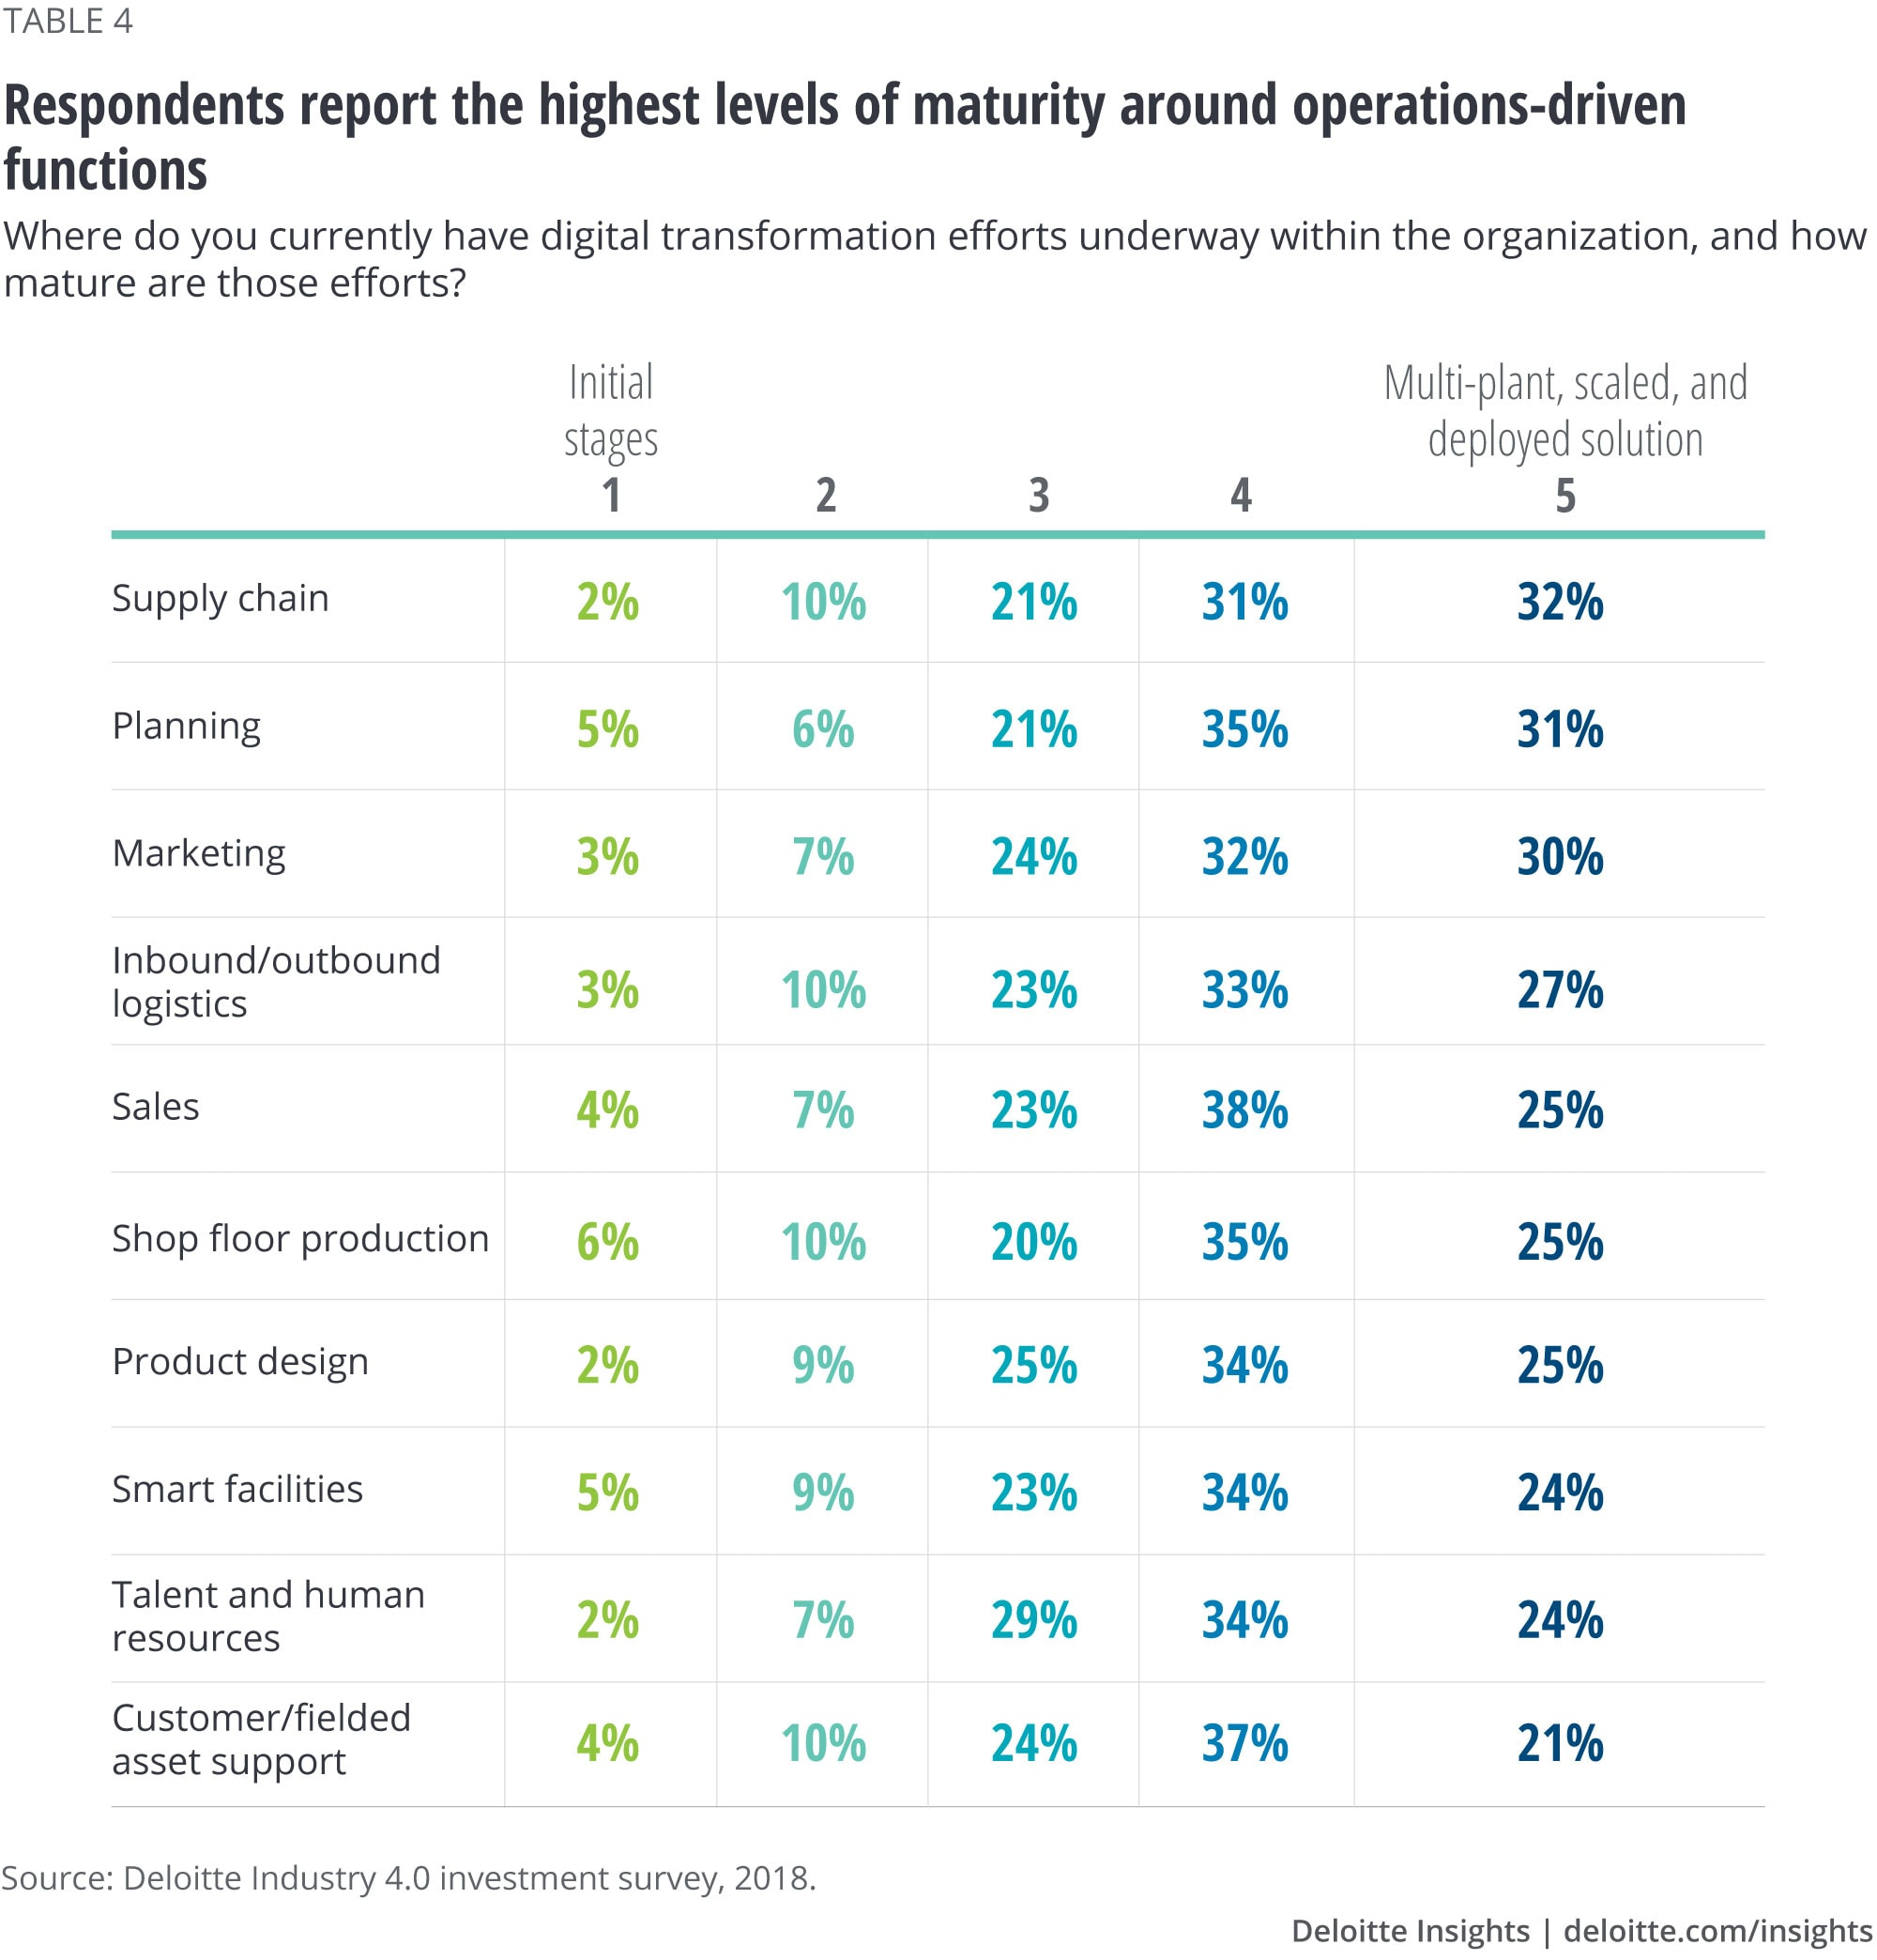 Respondents report the highest levels of maturity around operations-driven functions